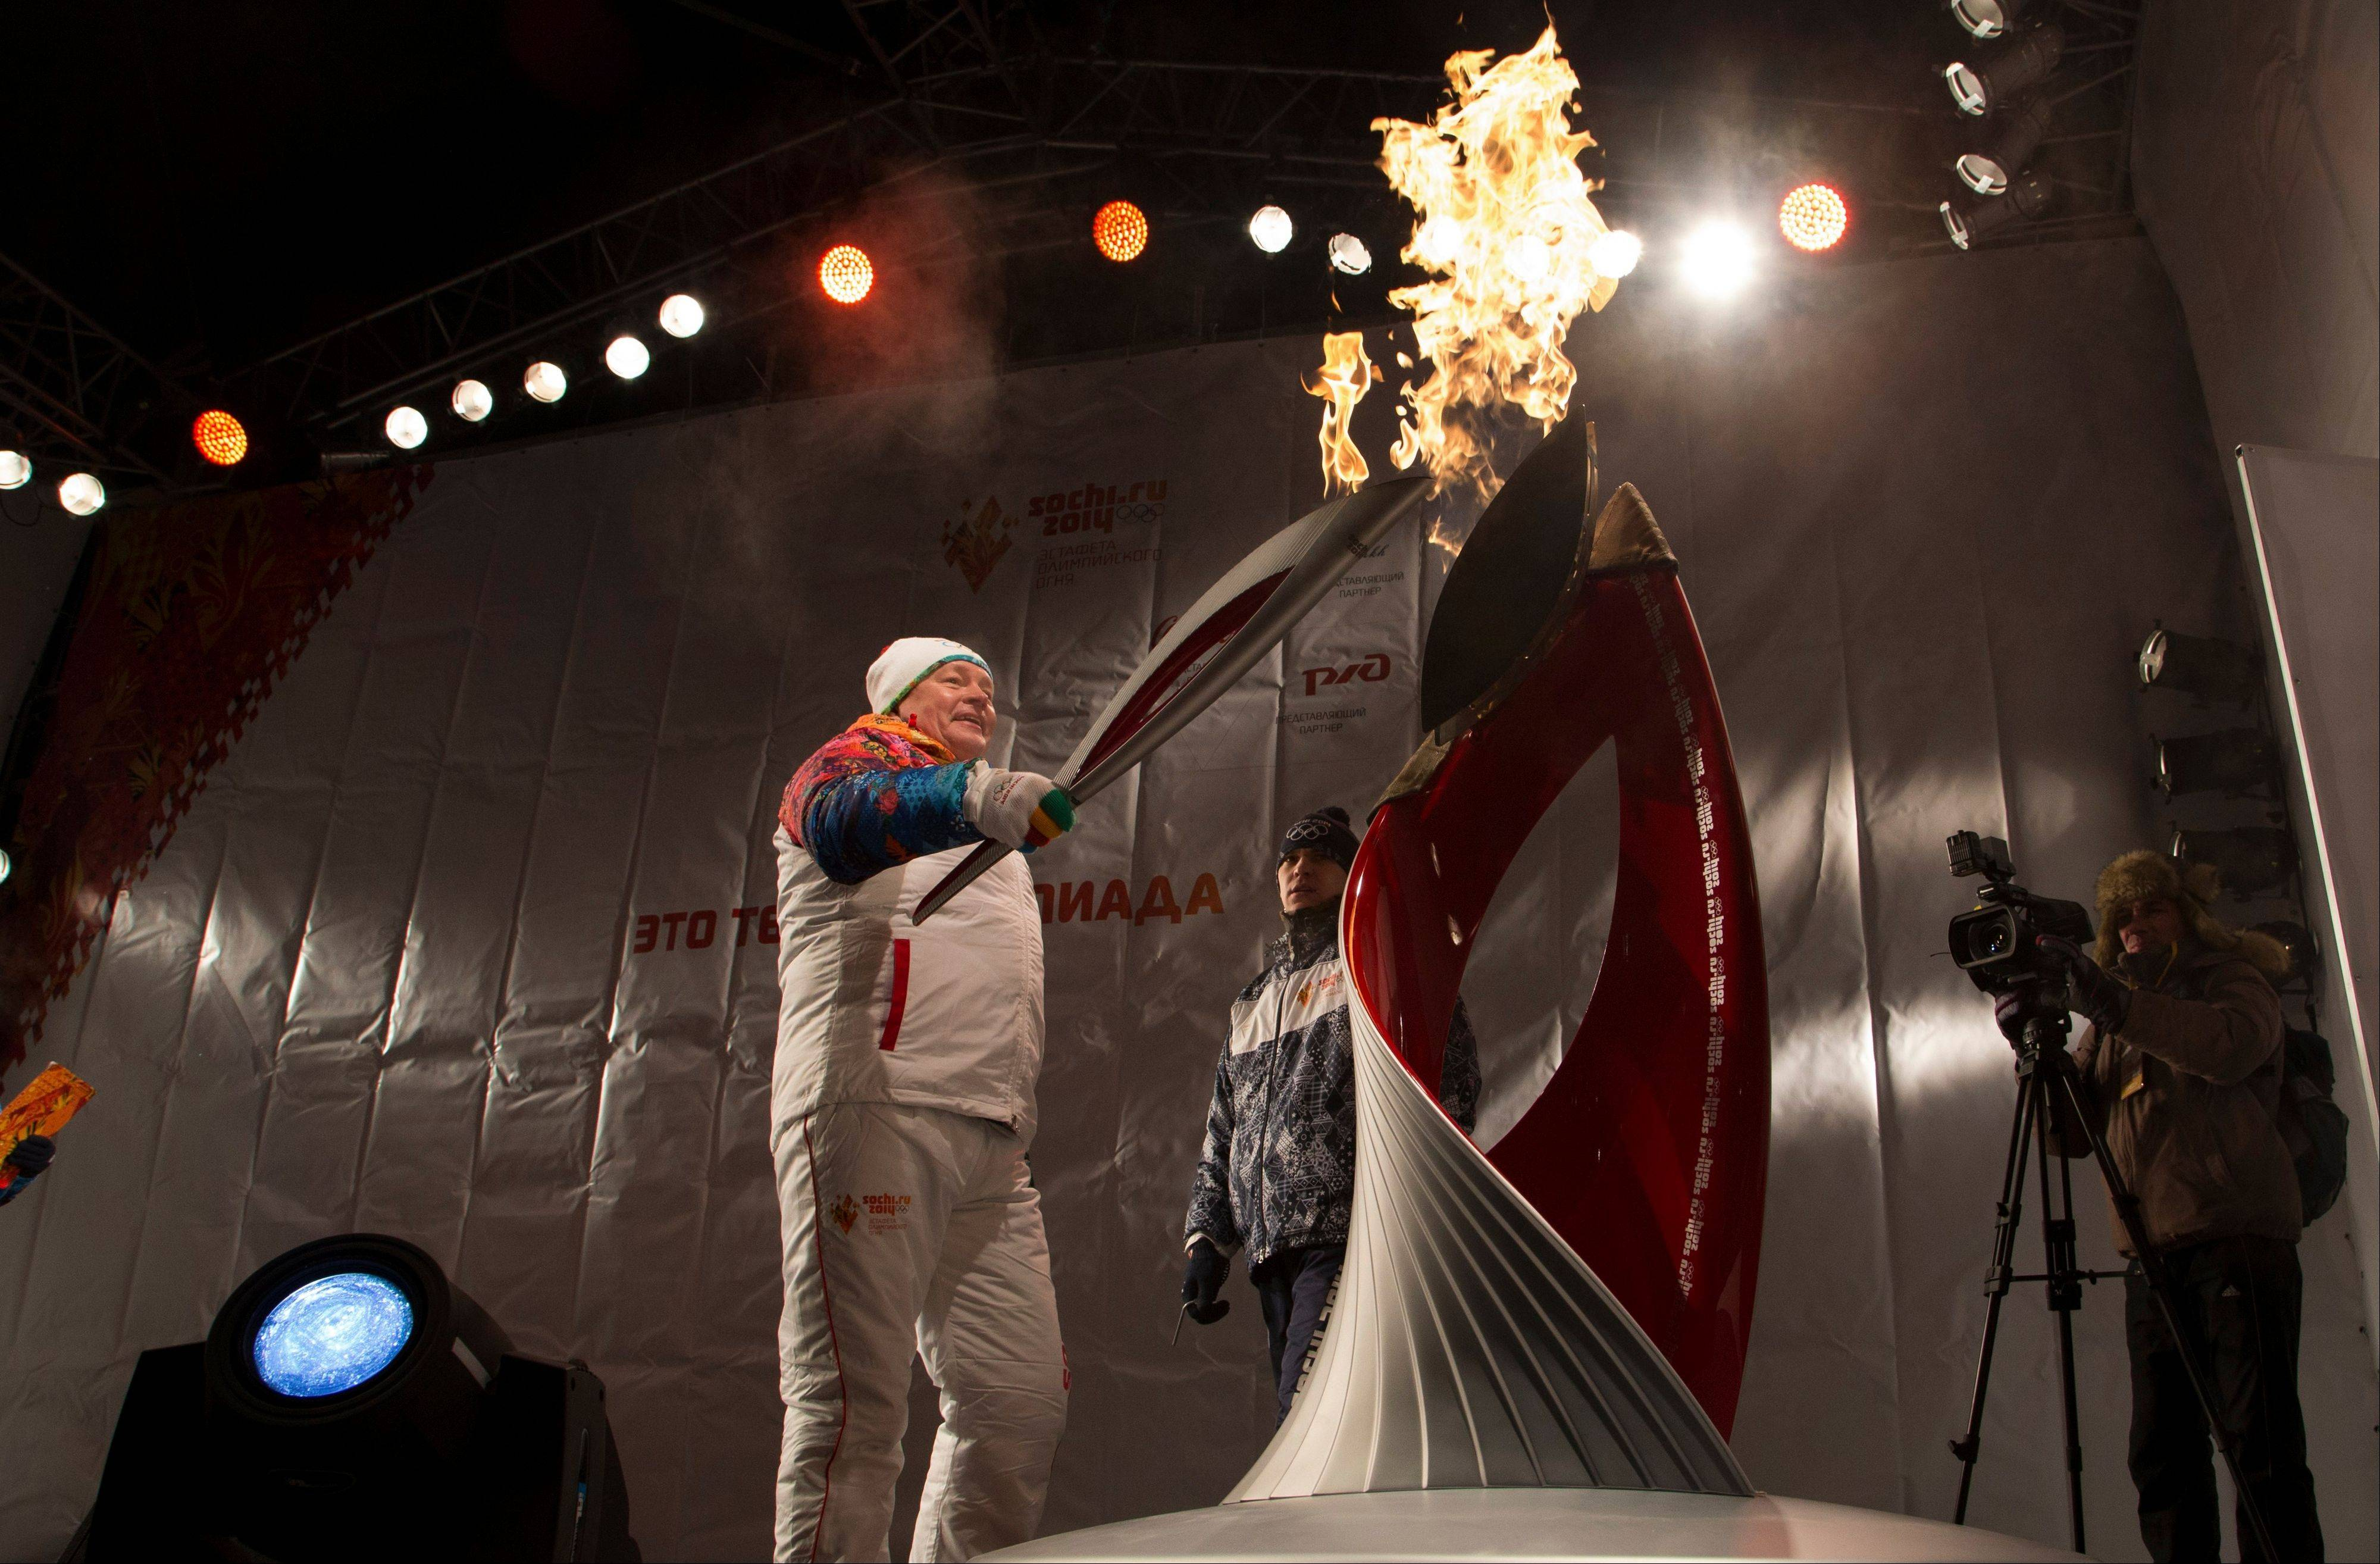 Olympic torch bearer Viktor Basargin holds the Olympic torch Saturday as he lights a symbolic Olympic flame during the torch relay in Perm, Russia.